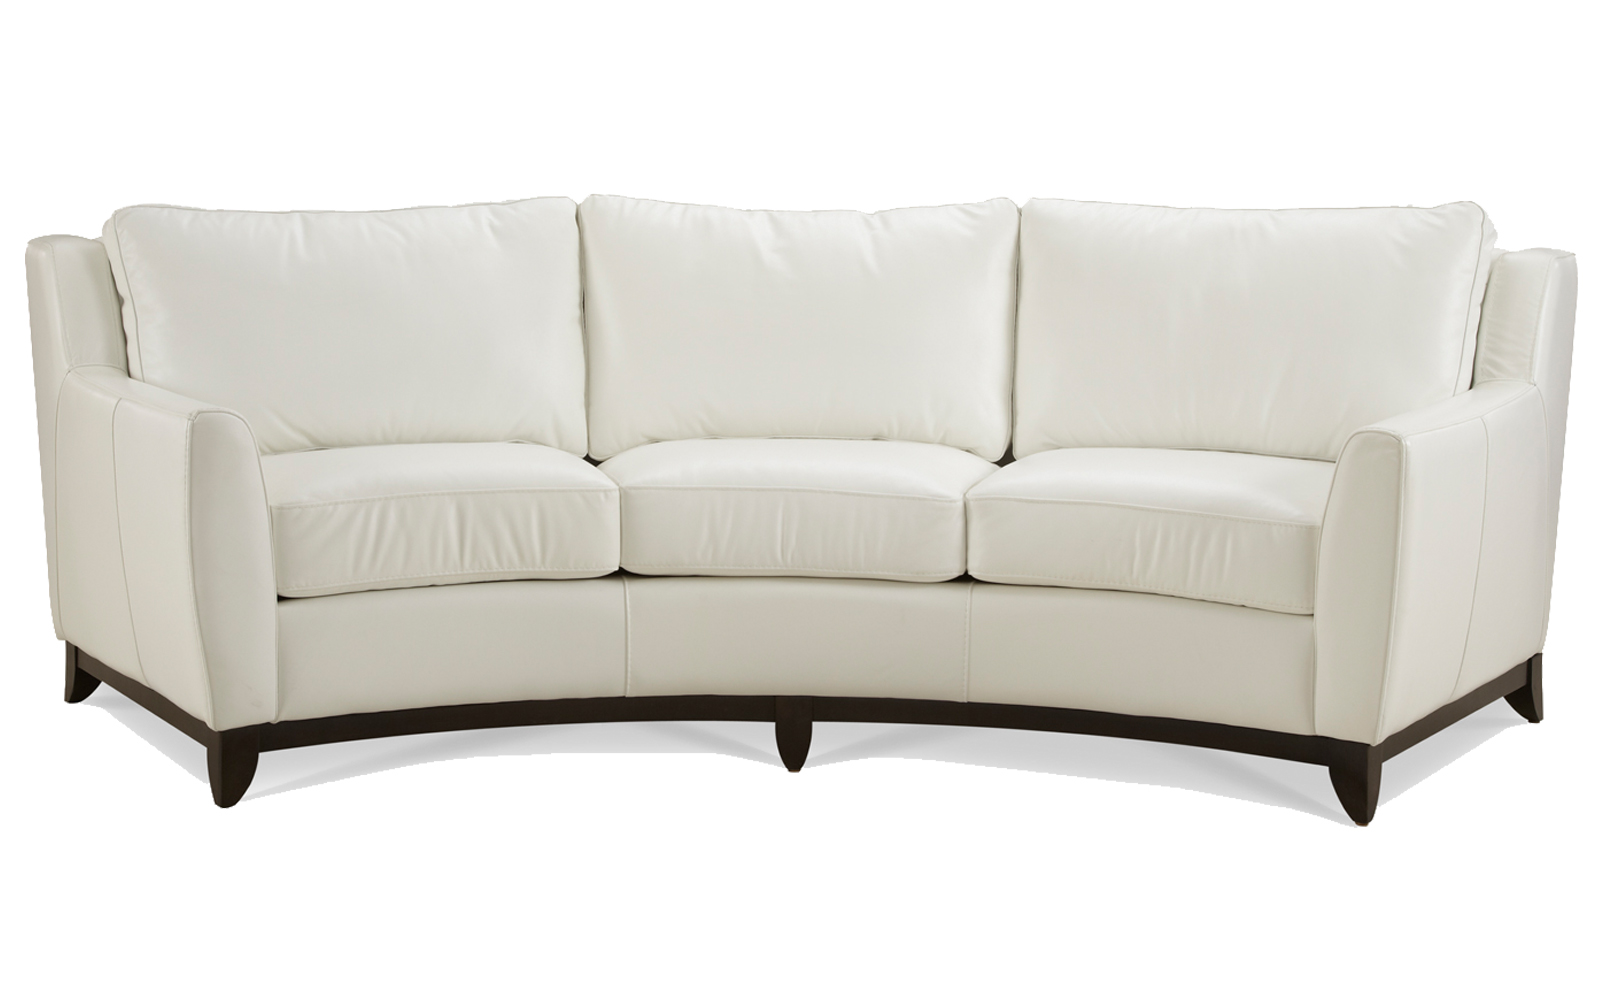 Pisa Conversation Sofa Arizona Leather Interiors